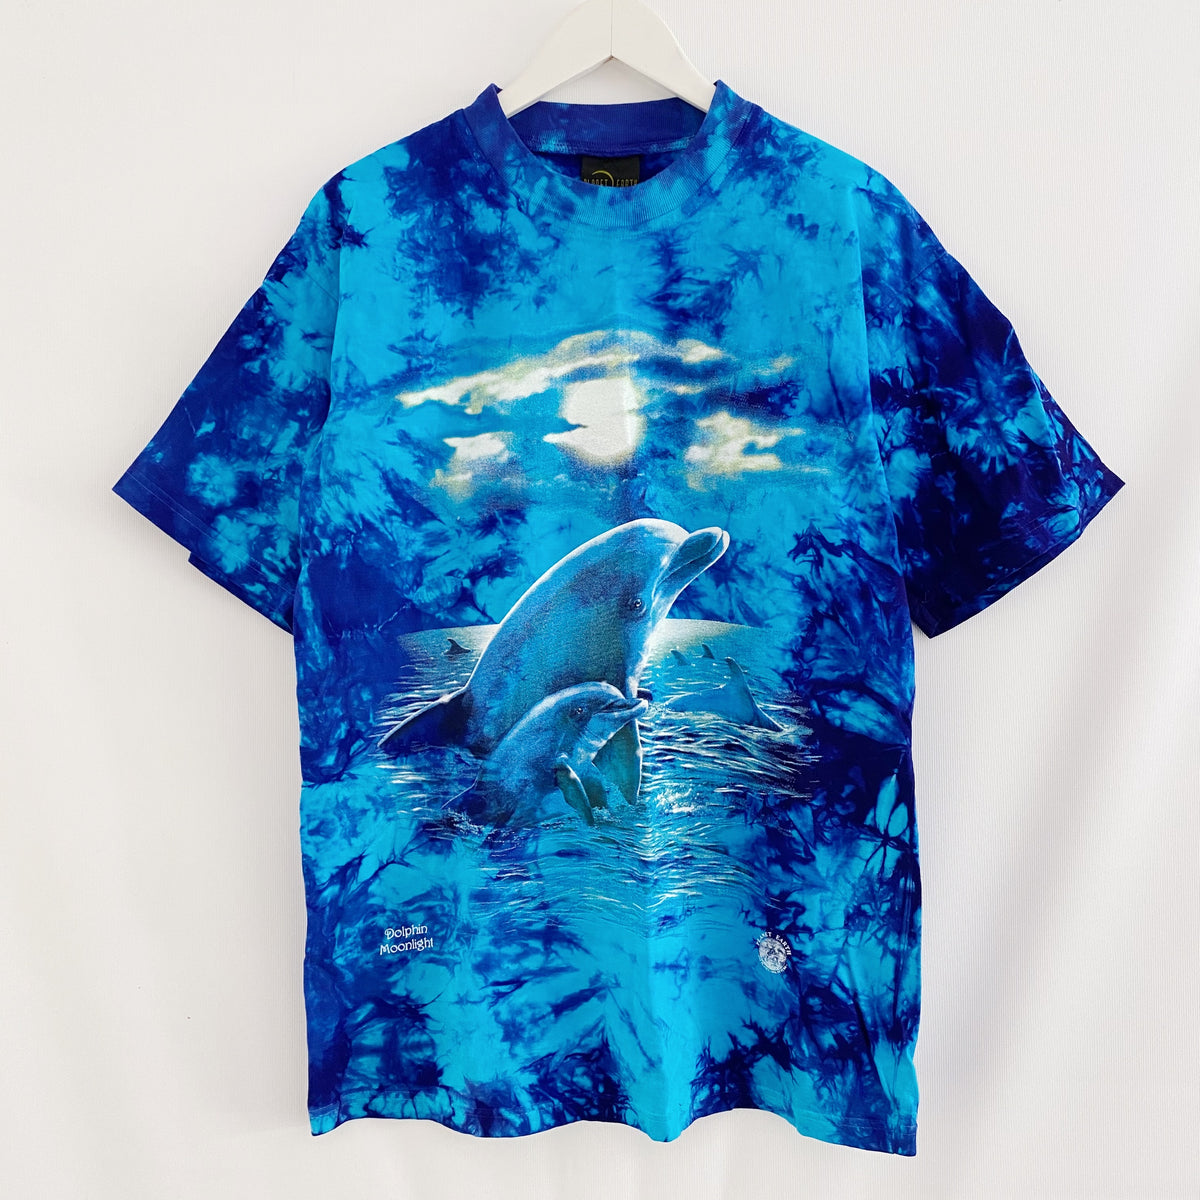 Dolphin Moonlight Planet Earth Tie Dye Vintage 90's T-Shirt Mens XL